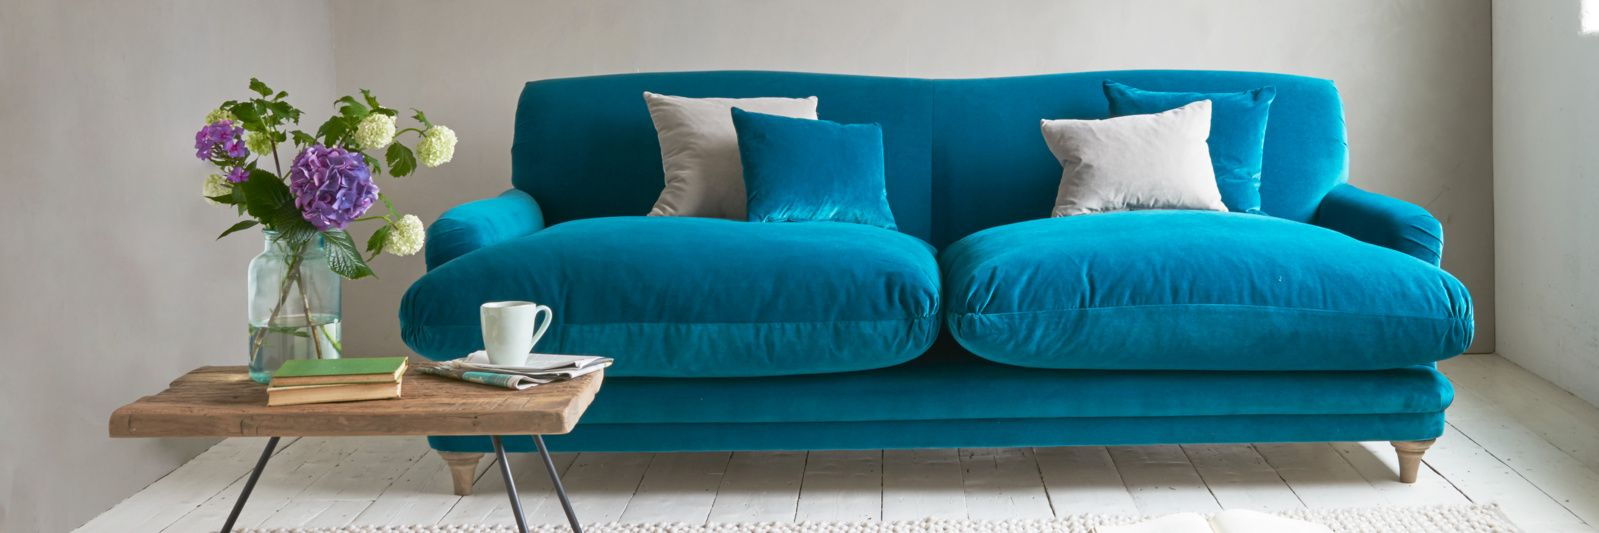 Awesome Teal Colored Couches Perfect 53 For Sofa Design Ideas With